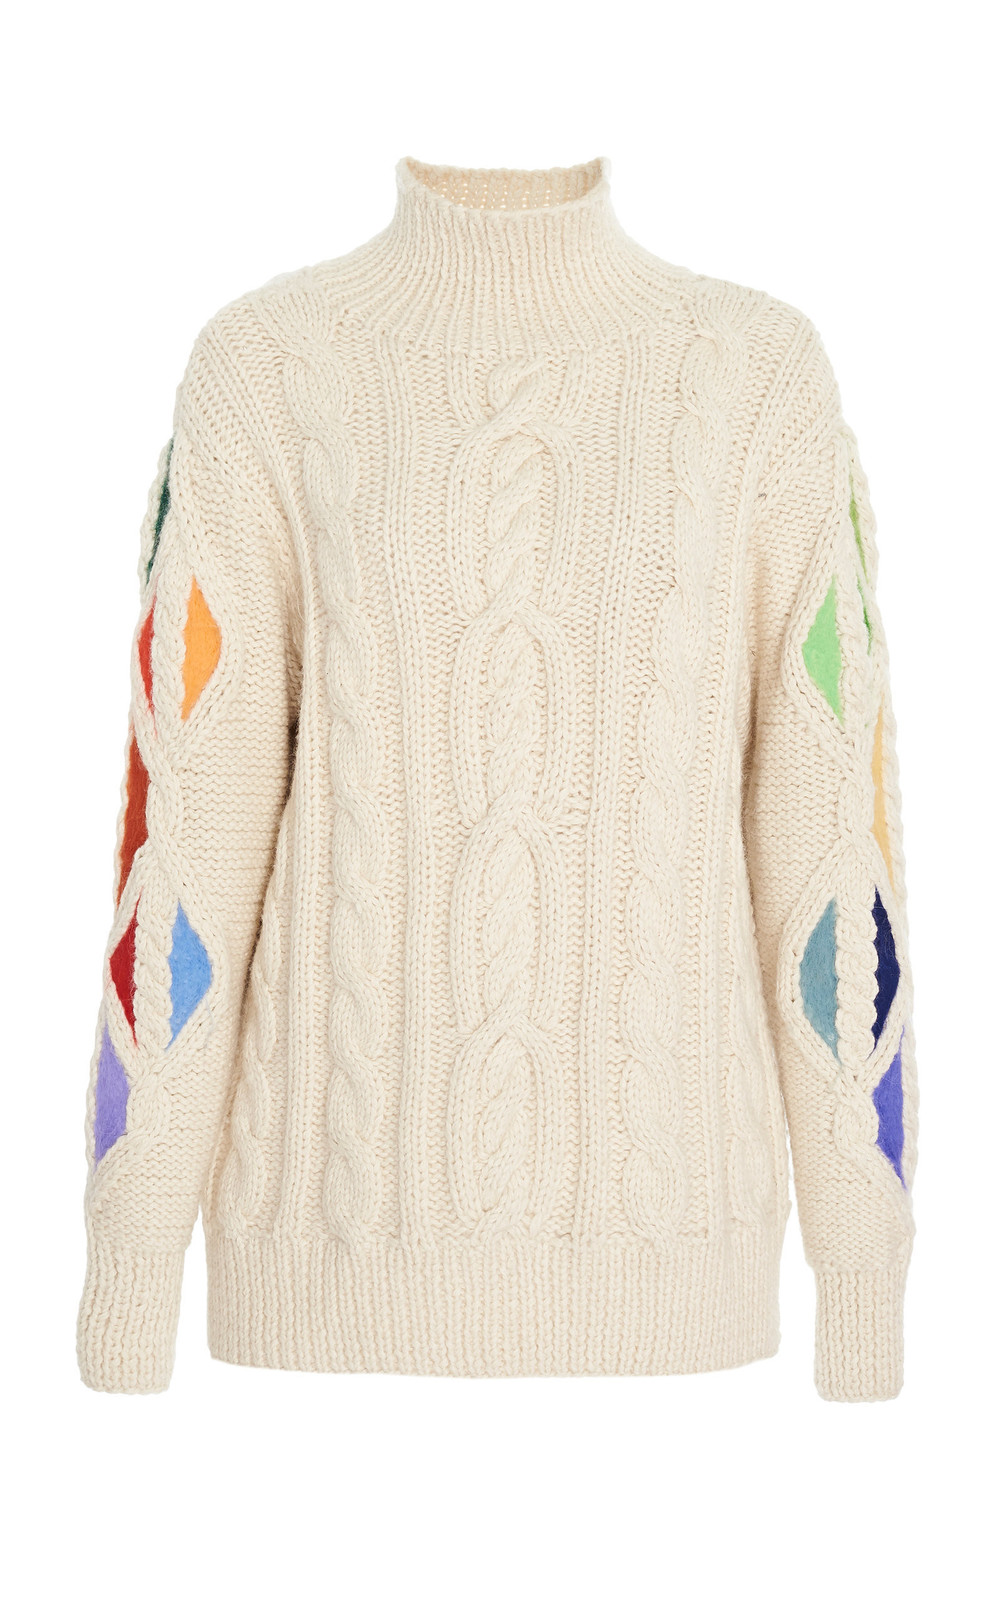 Rosie Assoulin Pain In The Glass Cable-Knit Alpaca Sweater in white